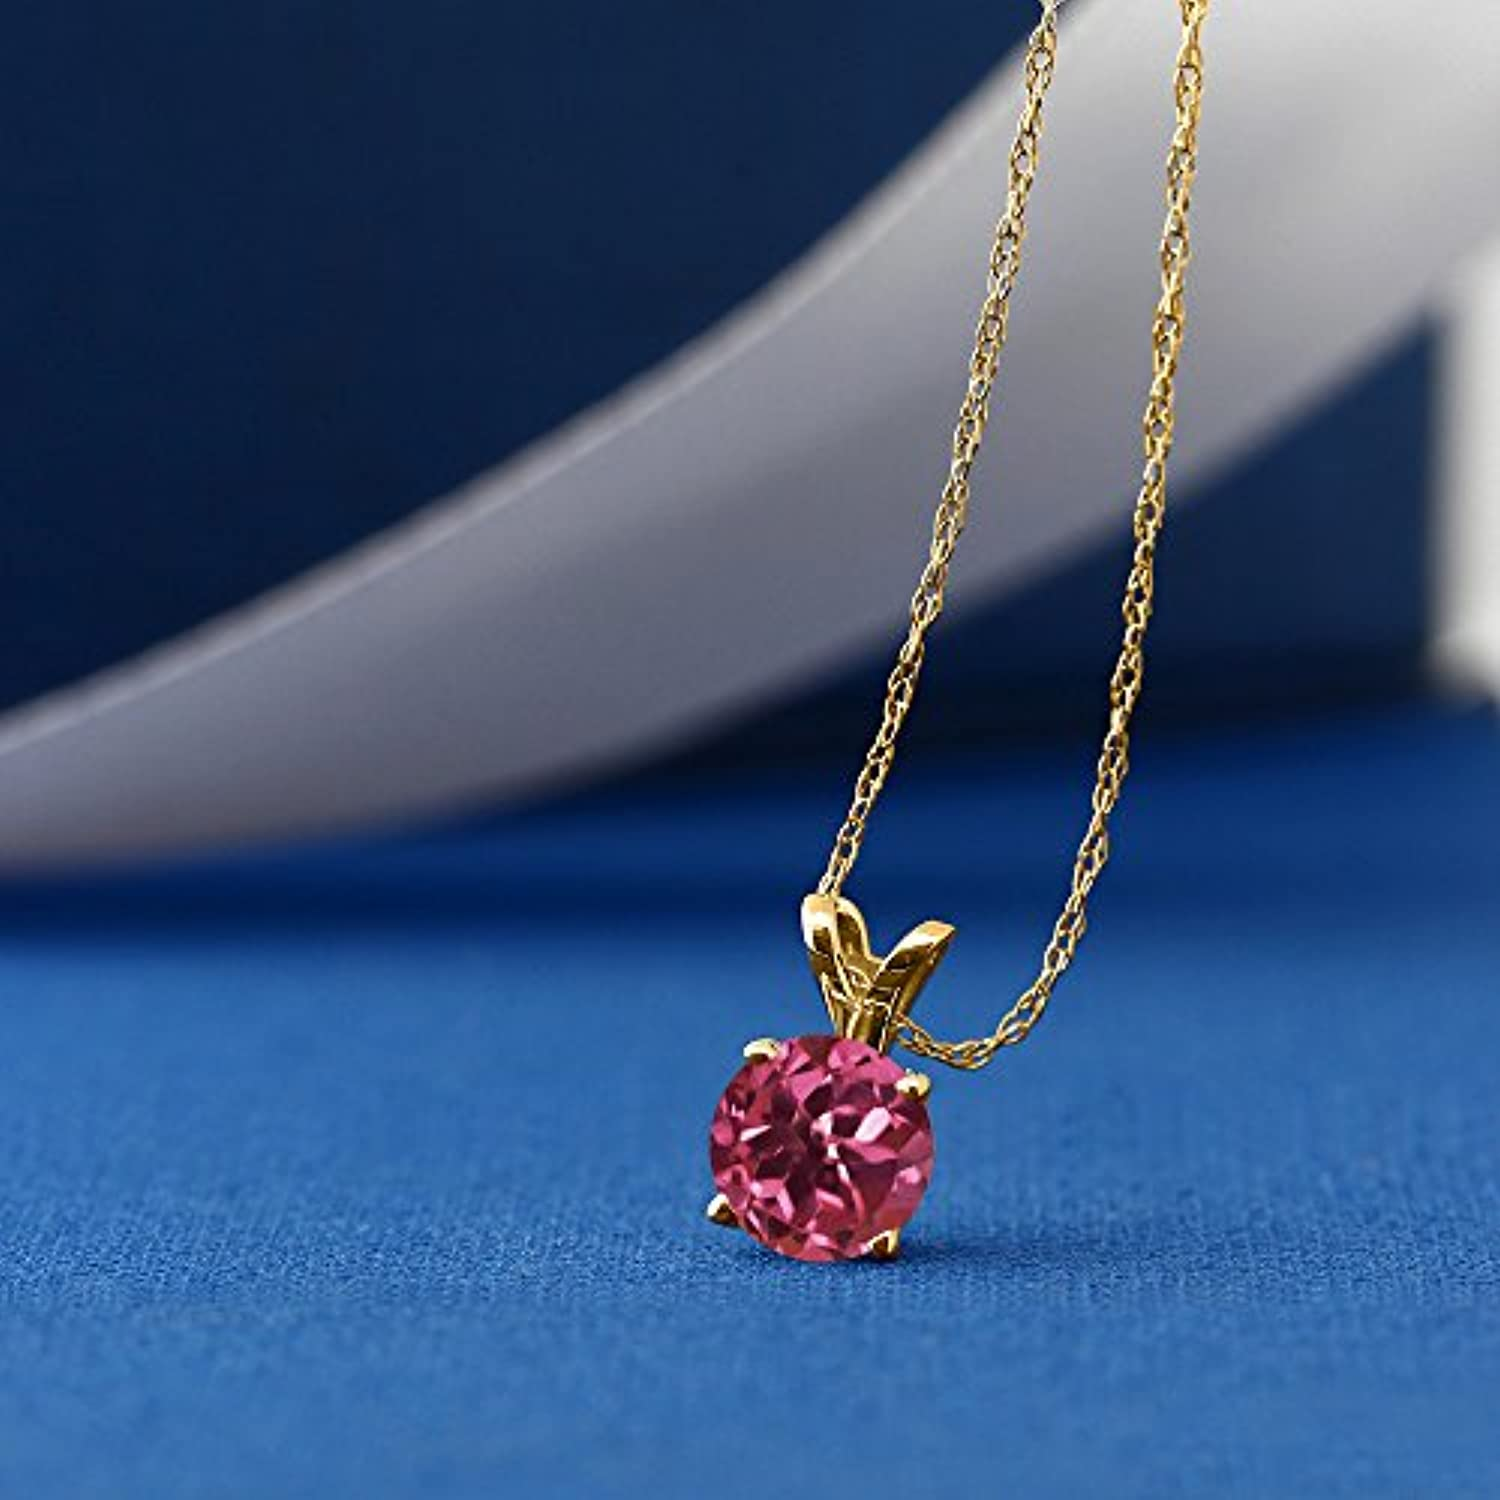 14K Gold Pink Tourmaline Pendant Necklace For Women